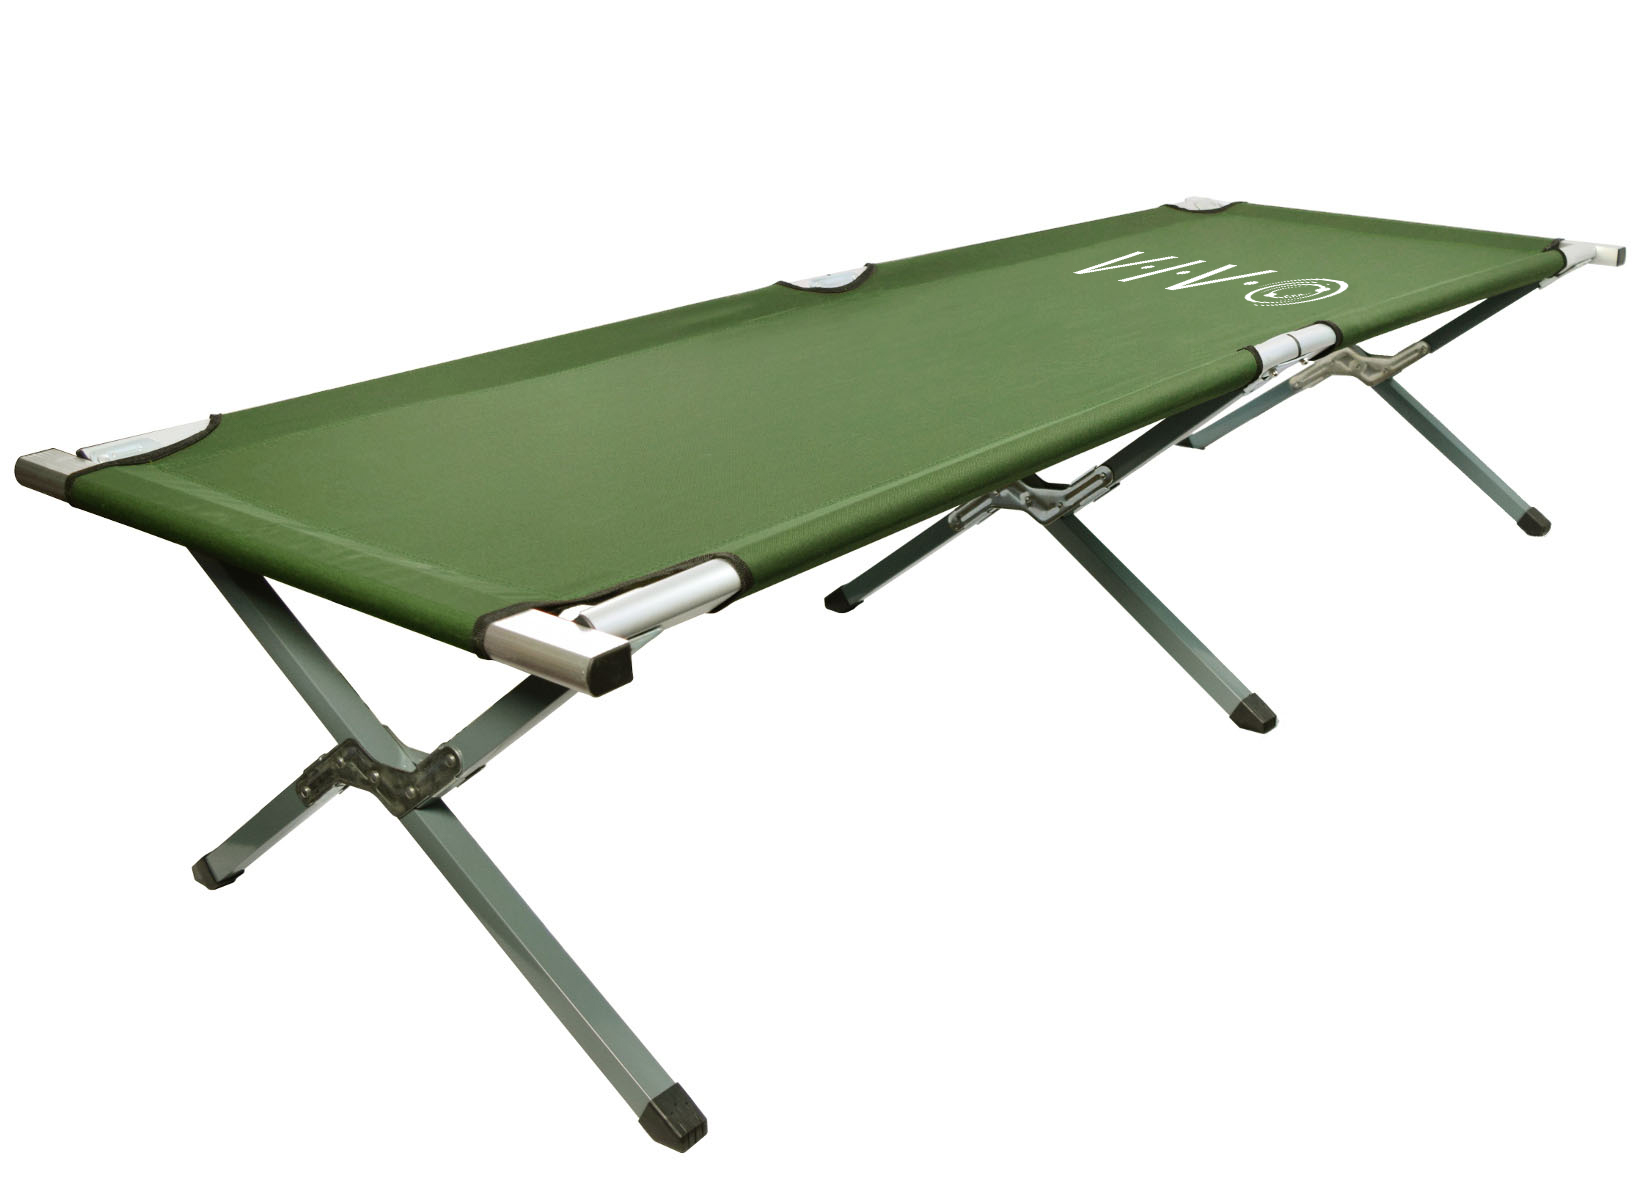 Portable folding bed in a bag - Main Image